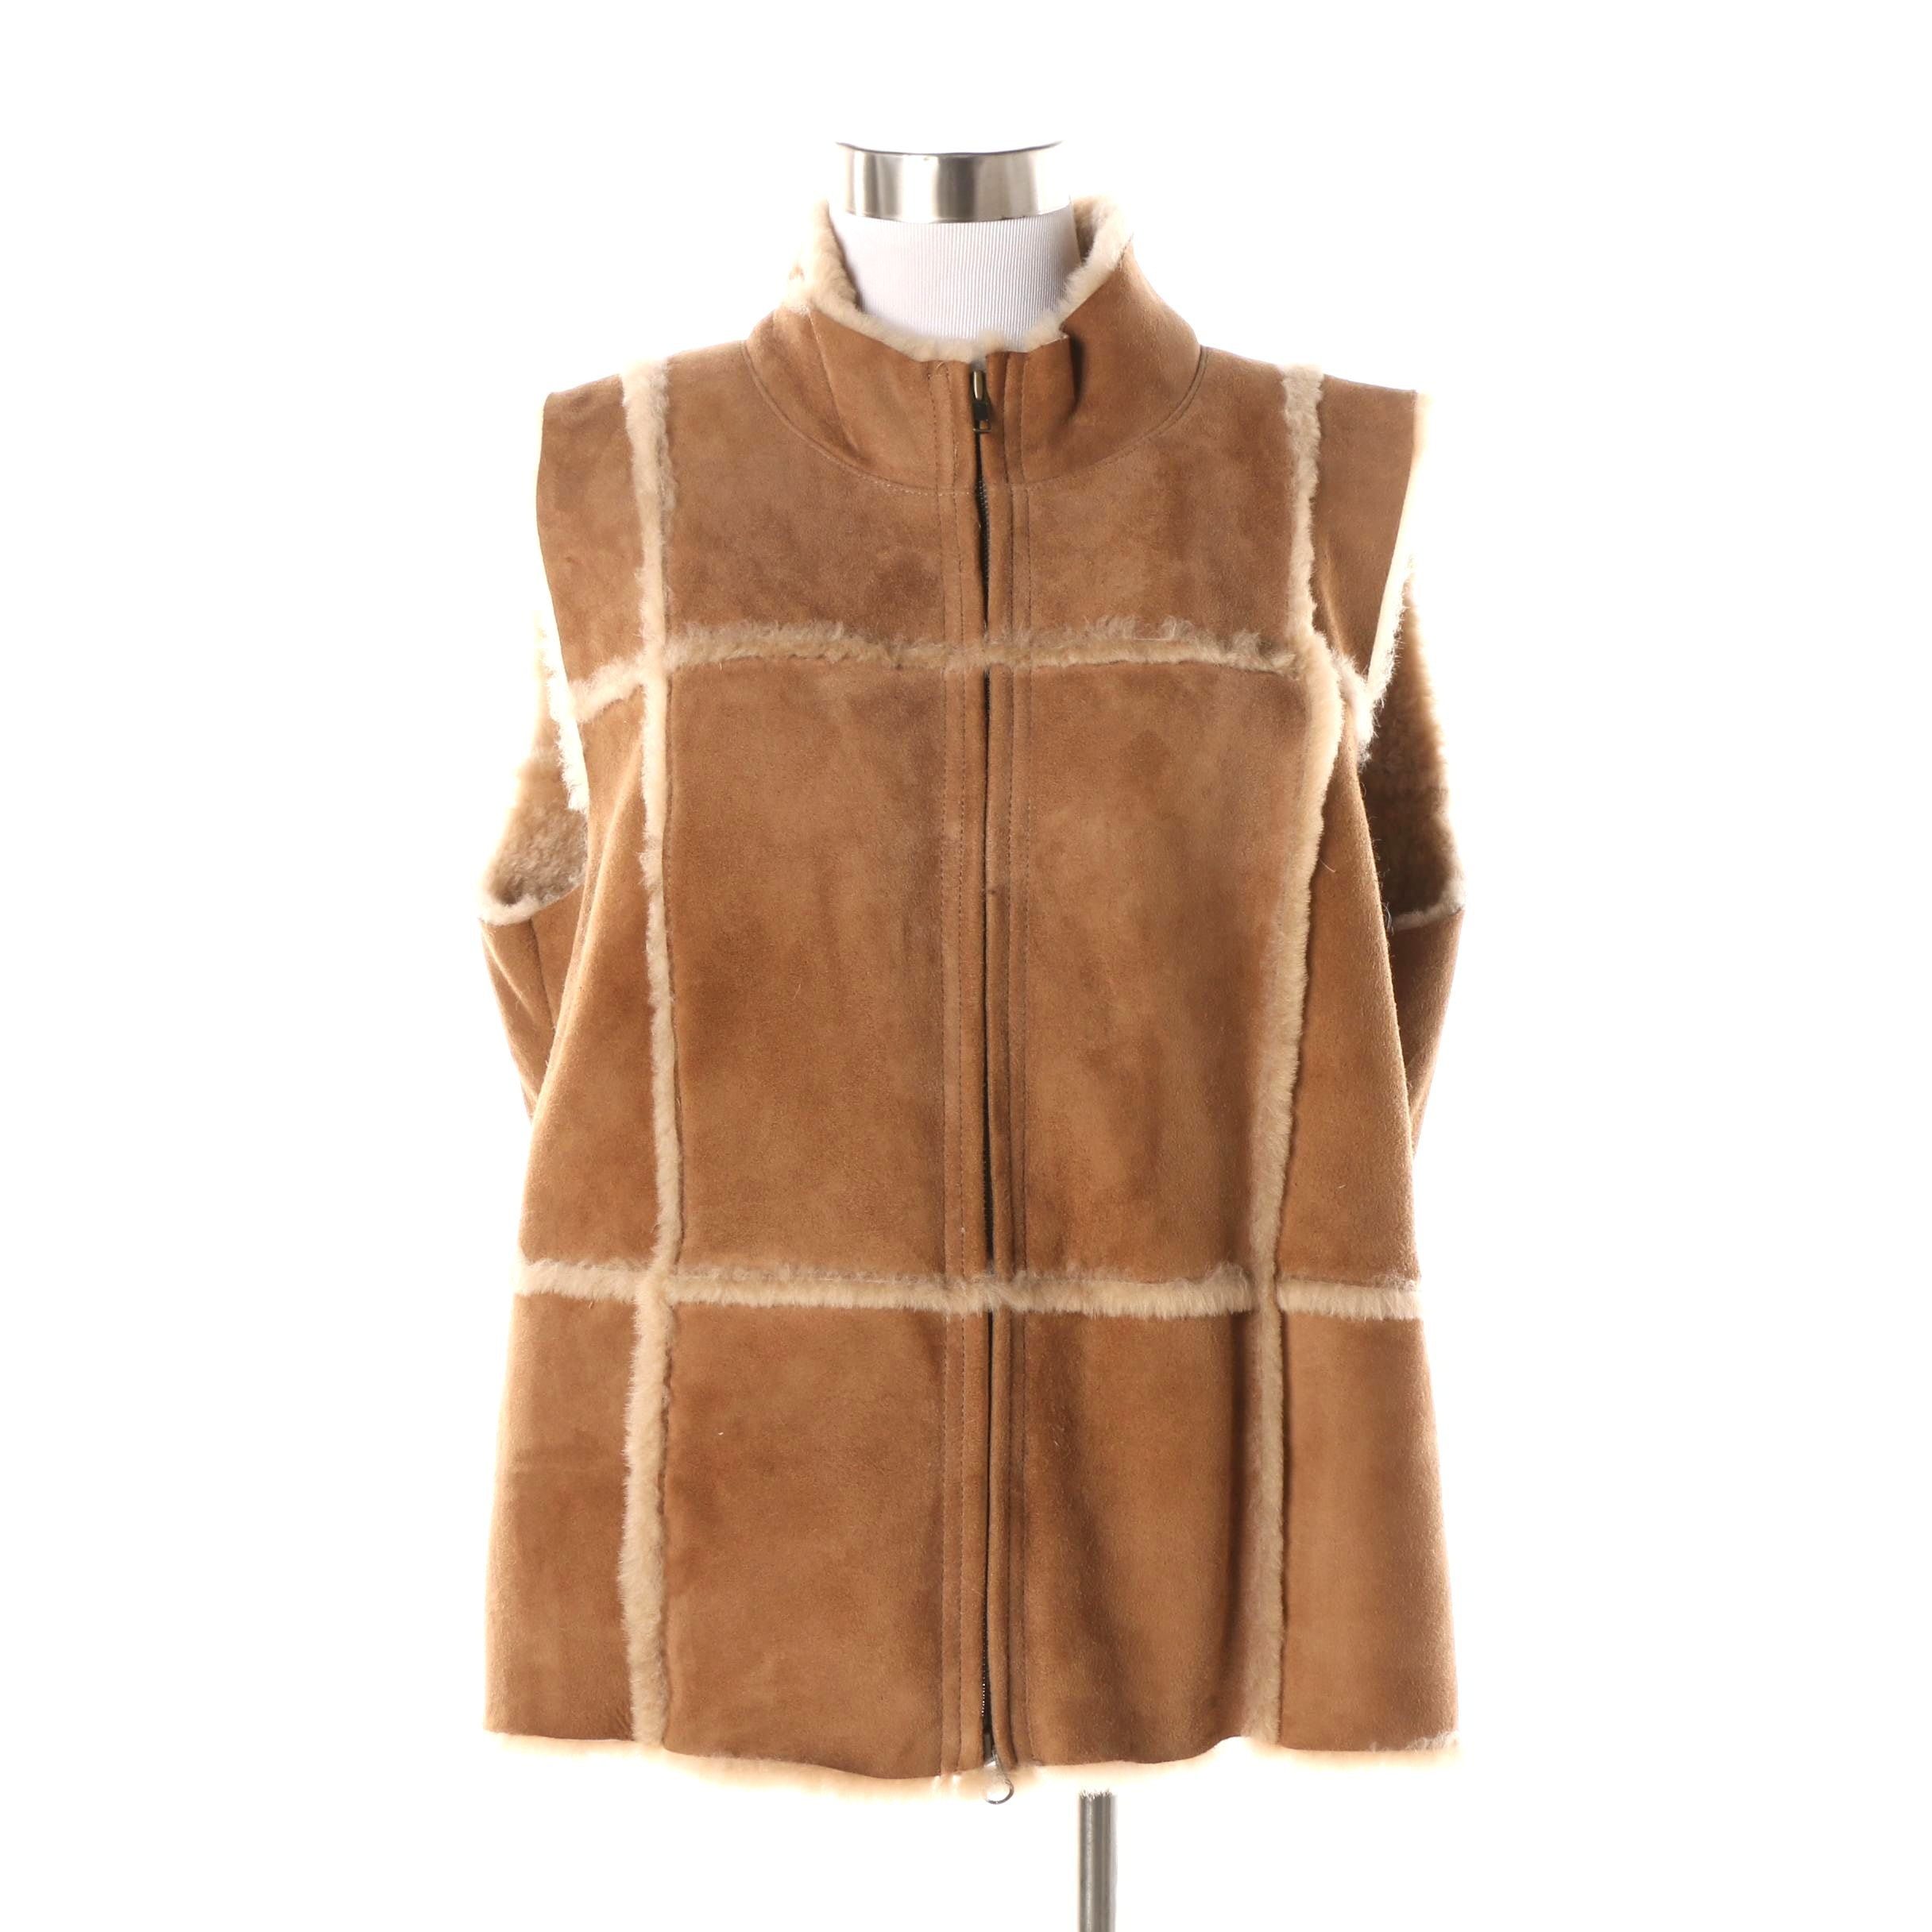 Women's Isabella Bird Tan Suede and Shearling Vest